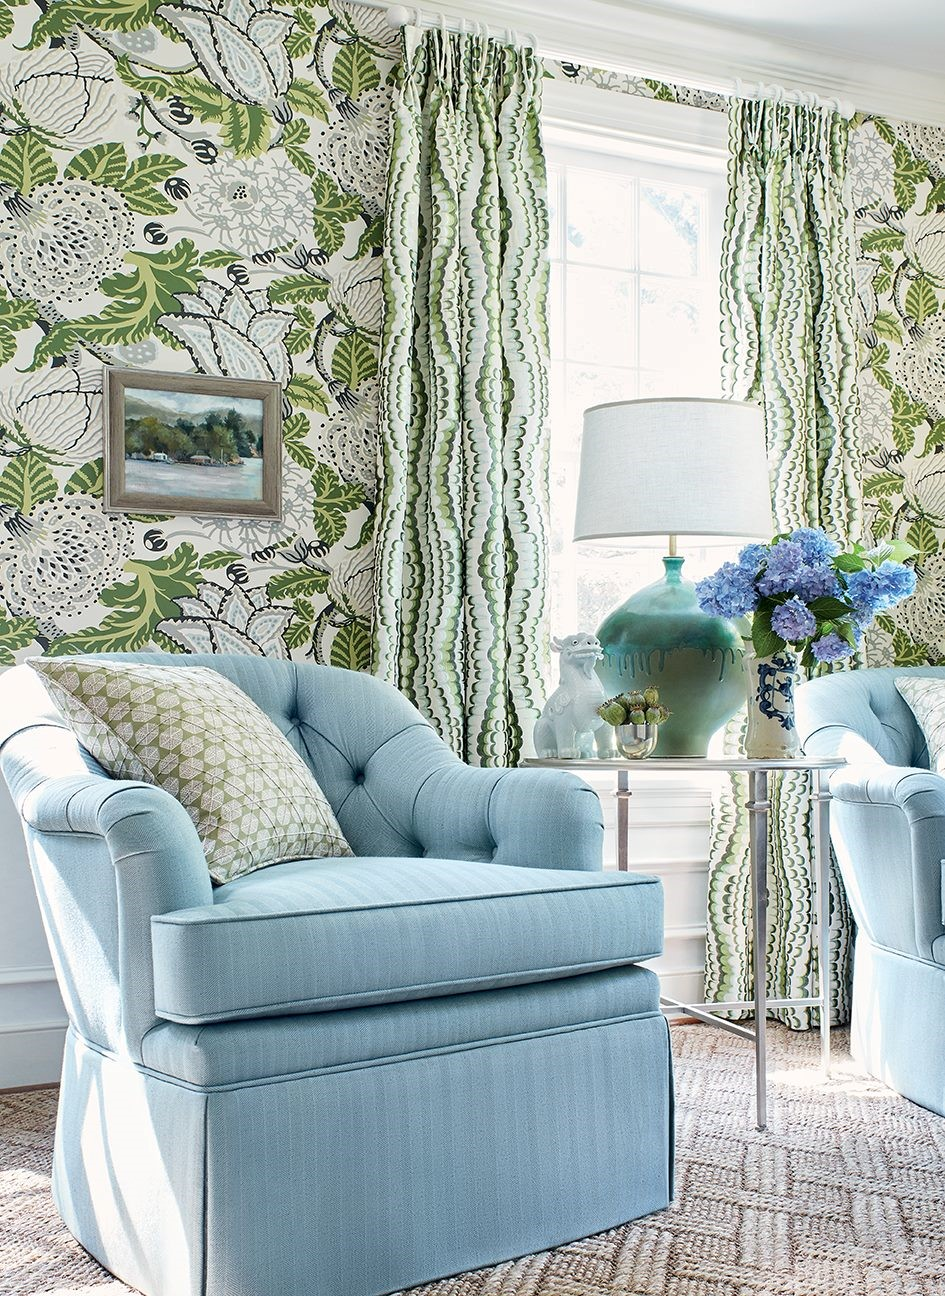 GREEN FLORAL WALLPAPER INTERIOR DESIGNER LEXINGTON KY.jpg